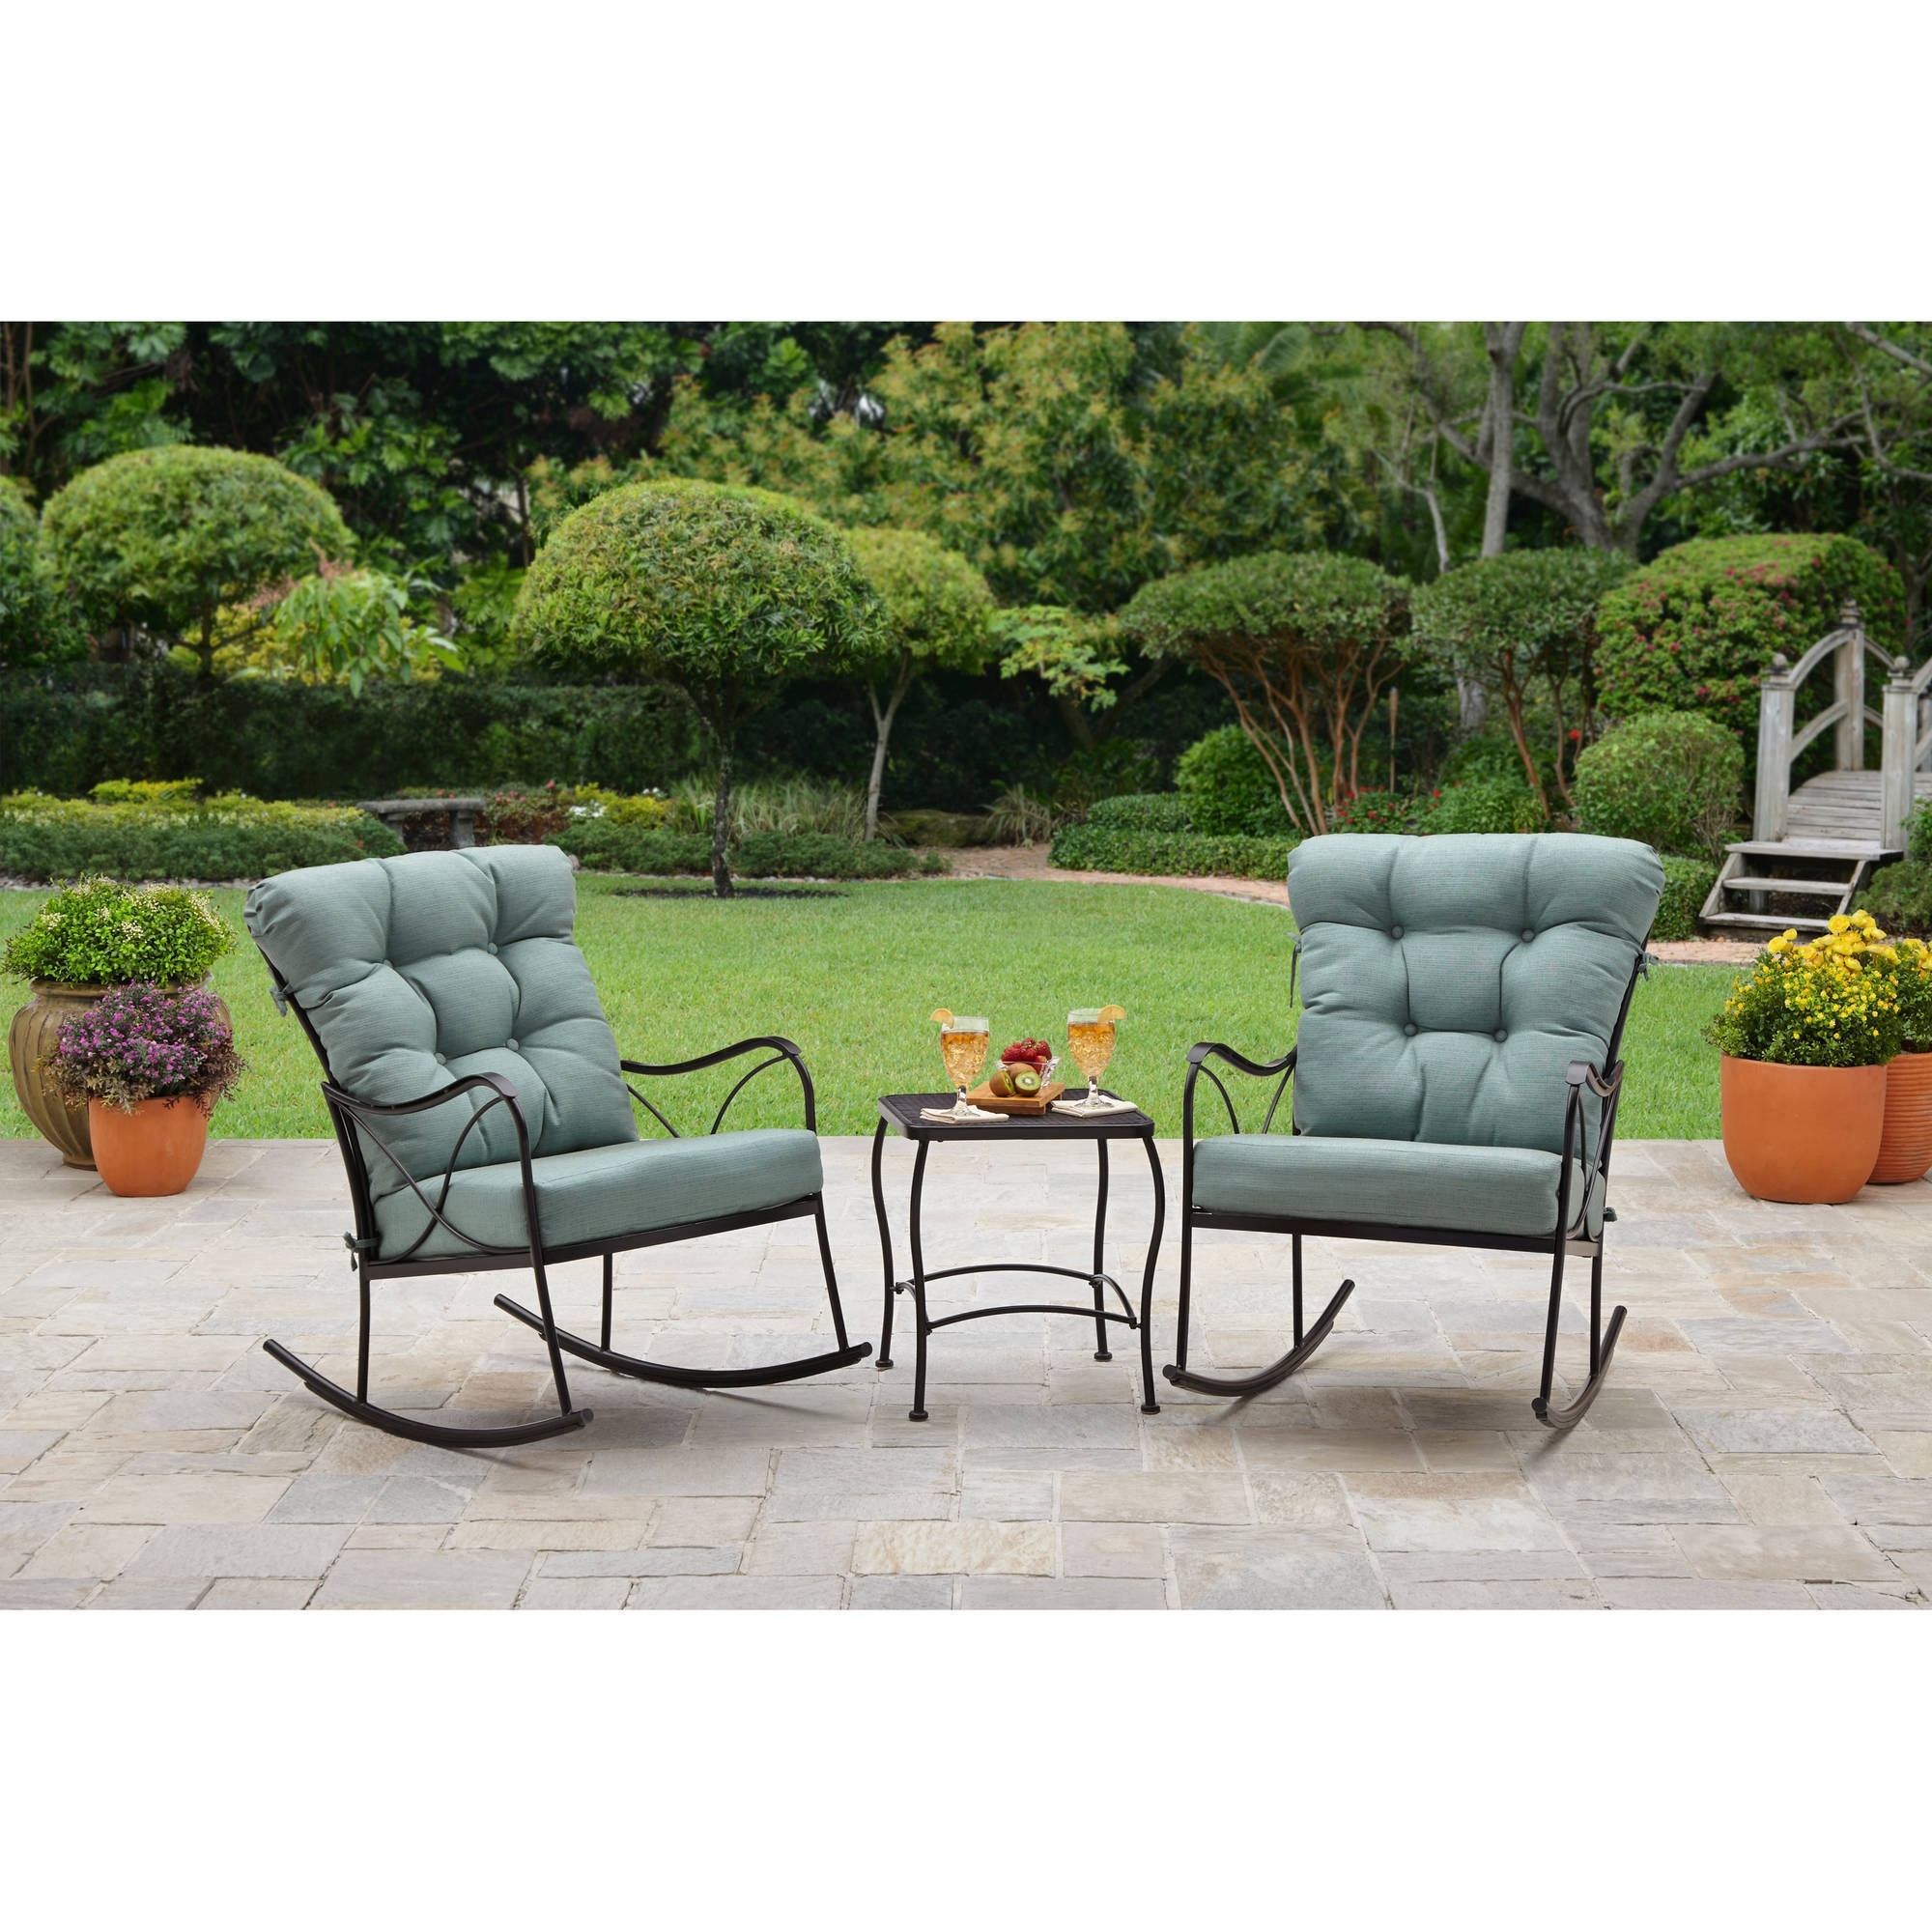 Better Homes And Gardens Seacliff 3 Piece Rocking Chair Bistro Set With Used Patio Rocking Chairs (View 11 of 15)